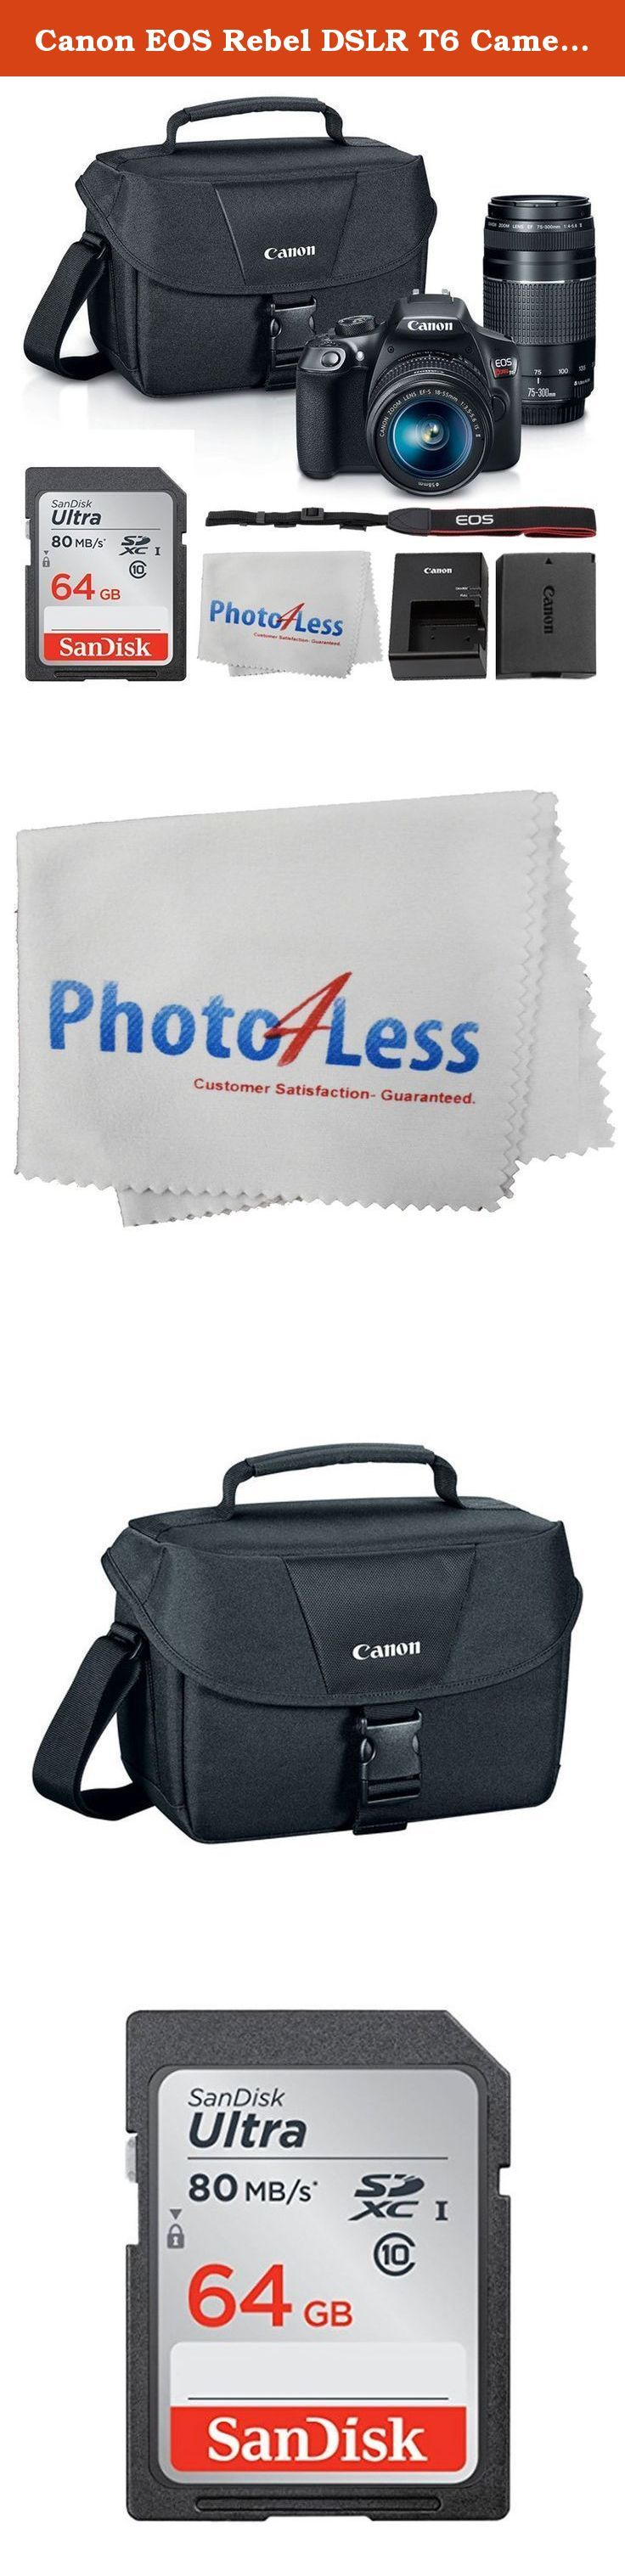 Canon EOS Rebel DSLR T6 Camera Body + Canon EF-S 18-55mm IS II Lens & EF 75-300mm III Lens + Canon EOS Shoulder Bag (Black) + SanDisk SDXC 64GB Memory Card + Cleaning Cloth + Ultimate Canon Bundle. In the Box: Canon EOS Rebel T6 DSLR Camera - Canon EF-S 18-55mm f/3.5-5.6 IS II Lens - Canon EF 75-300mm f/4-5.6 III Lens - LP-E10 Lithium-Ion Battery Pack - LC-E10 Battery Charger - Eyecup Ef for Digital Rebel Cameras - RF-3 Body Cap for Canon EOS Cameras - EW-400D Neck Strap - Battery Cover...